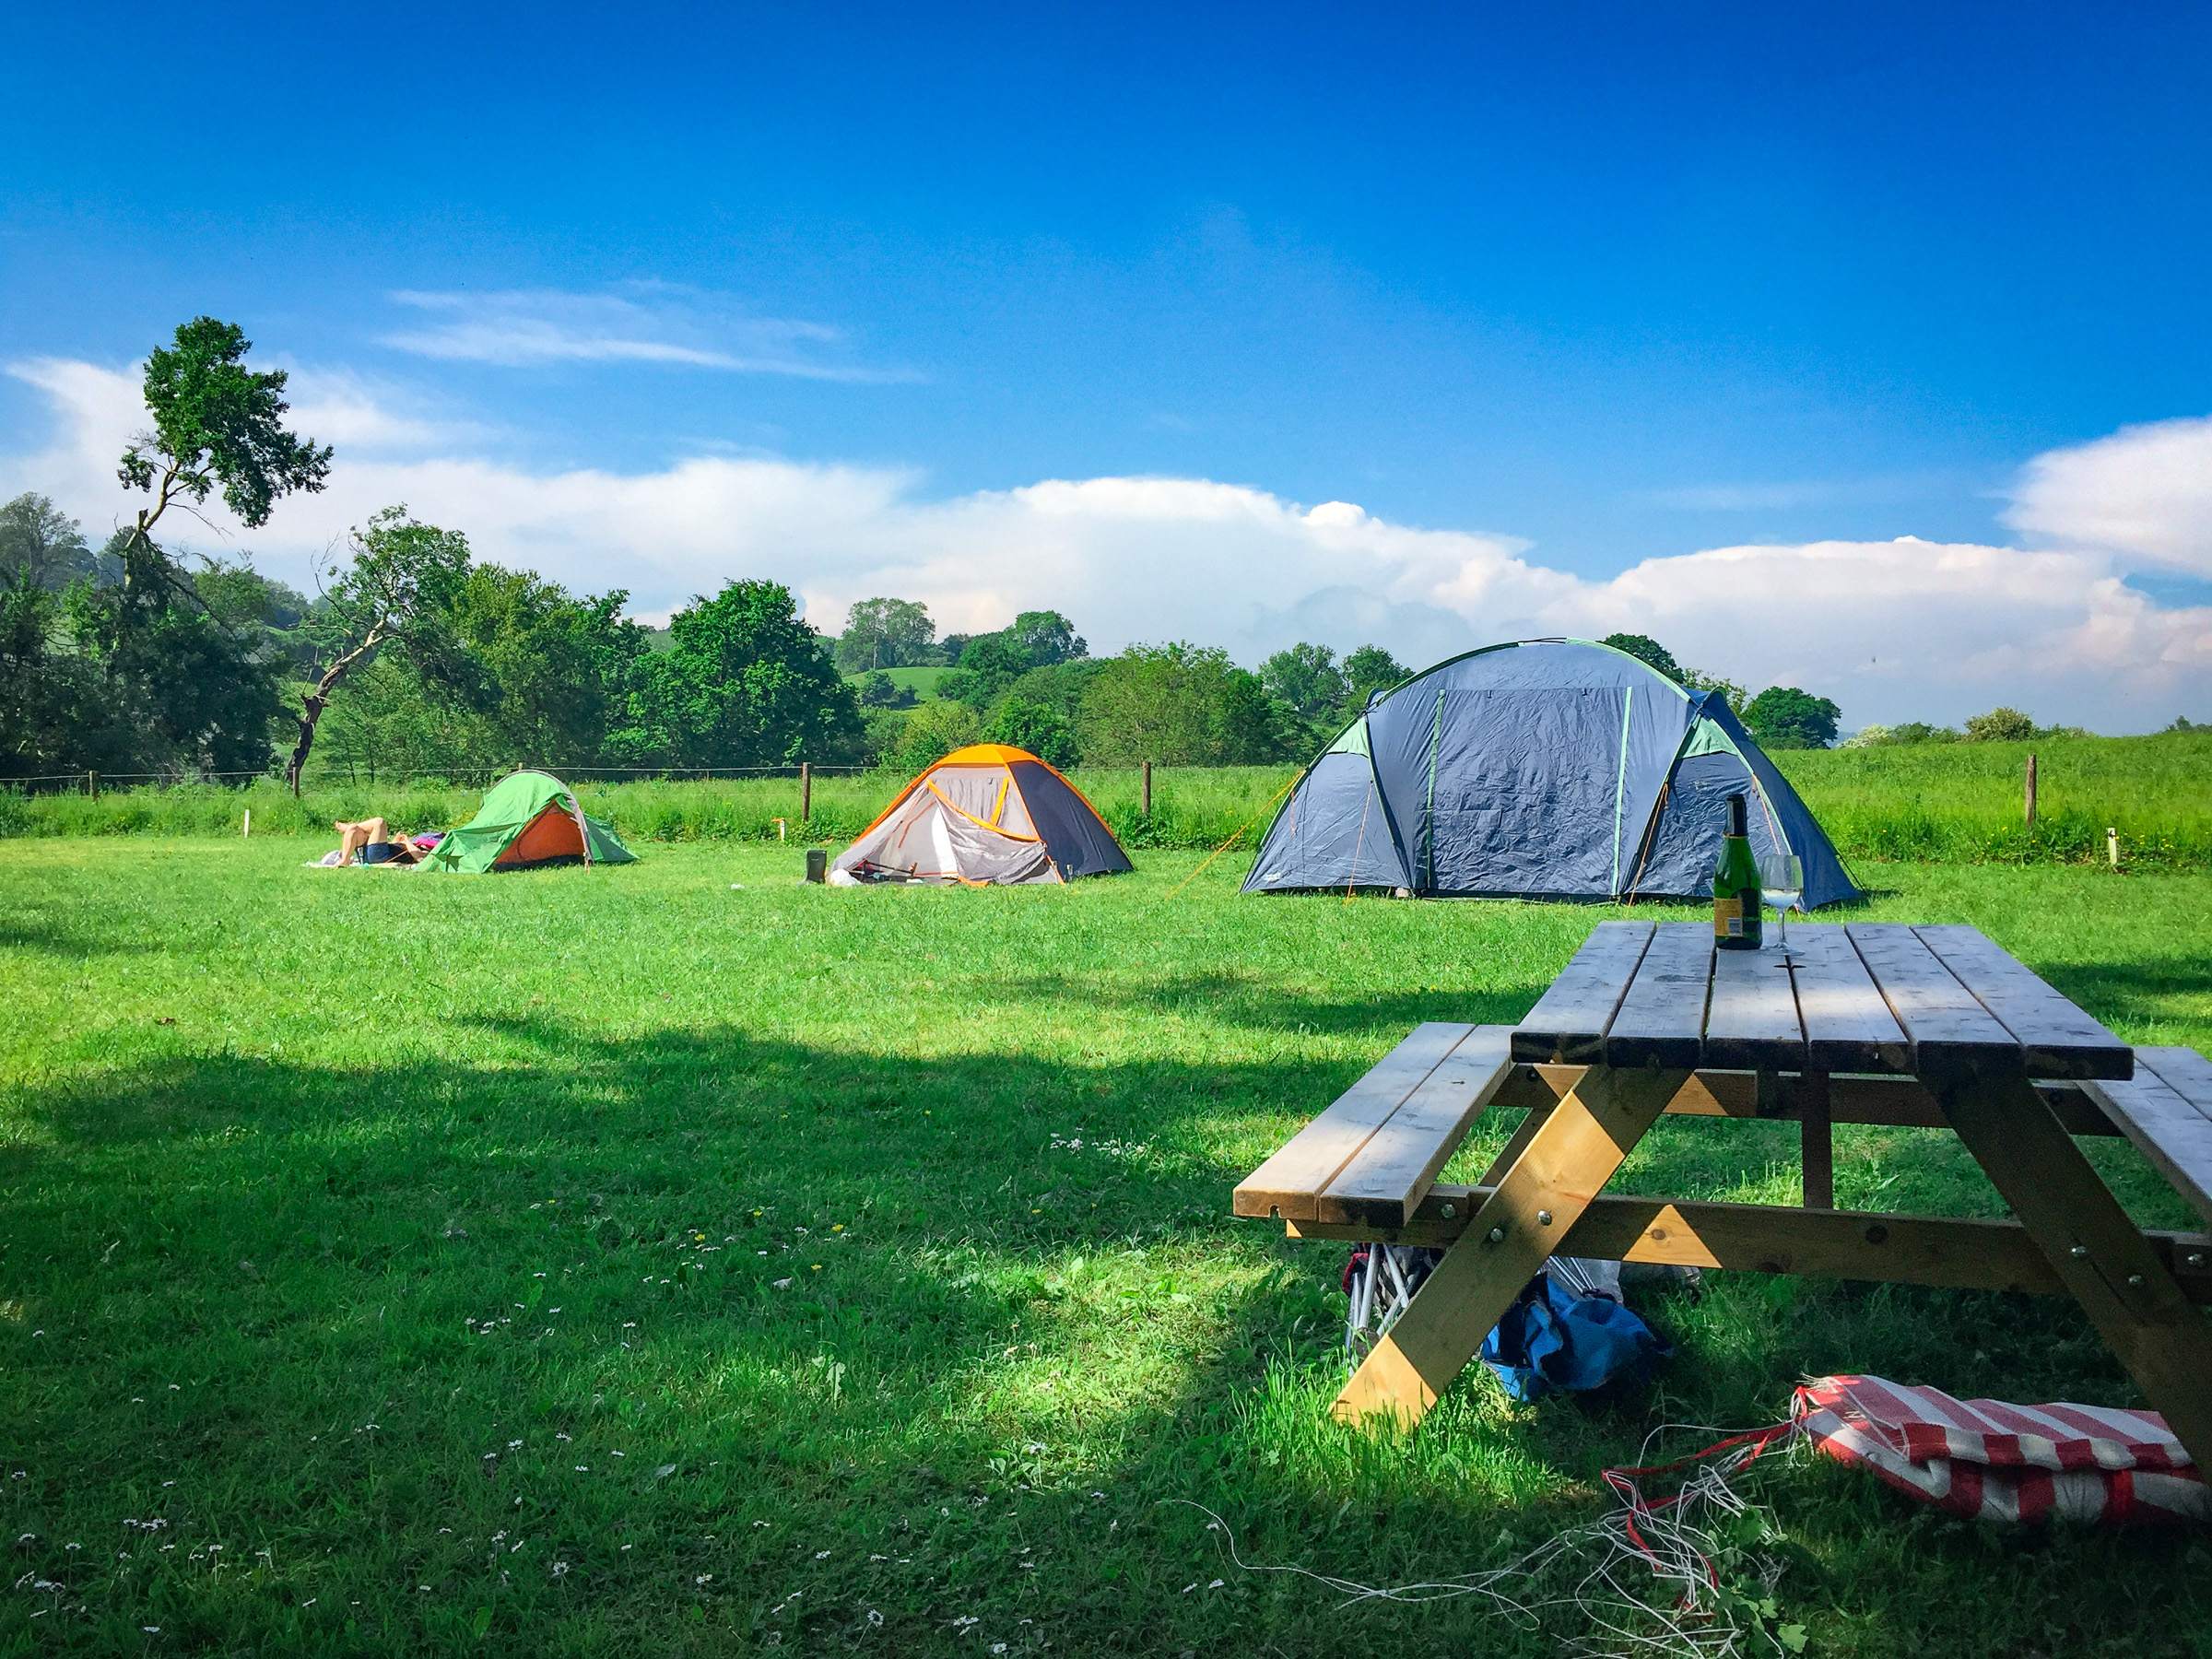 Painswick Glamping – Campers relaxing